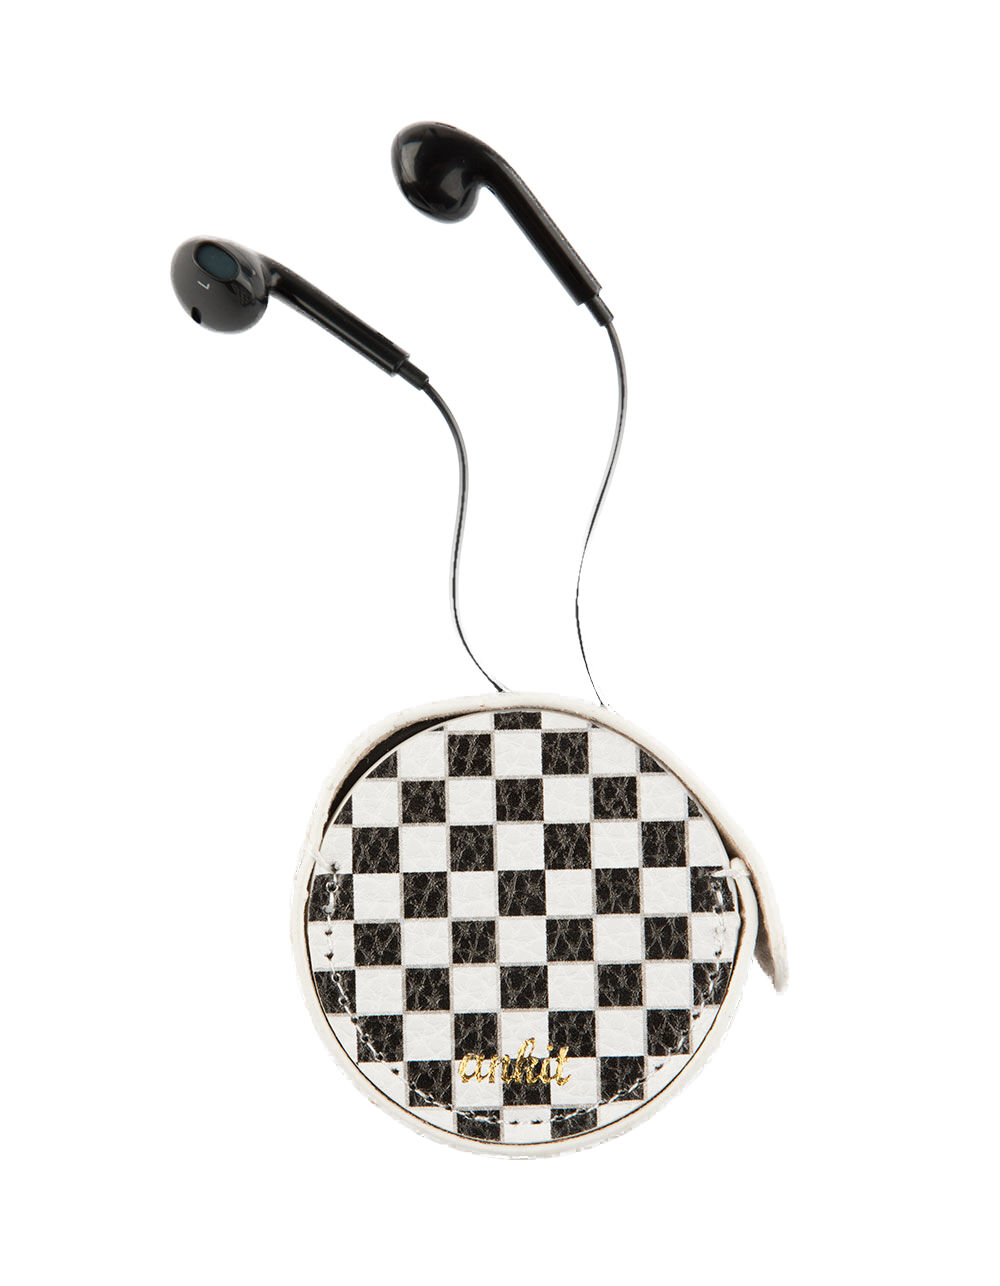 Image of ANKIT CHECKERED EARBUDS & CARRYING CASE